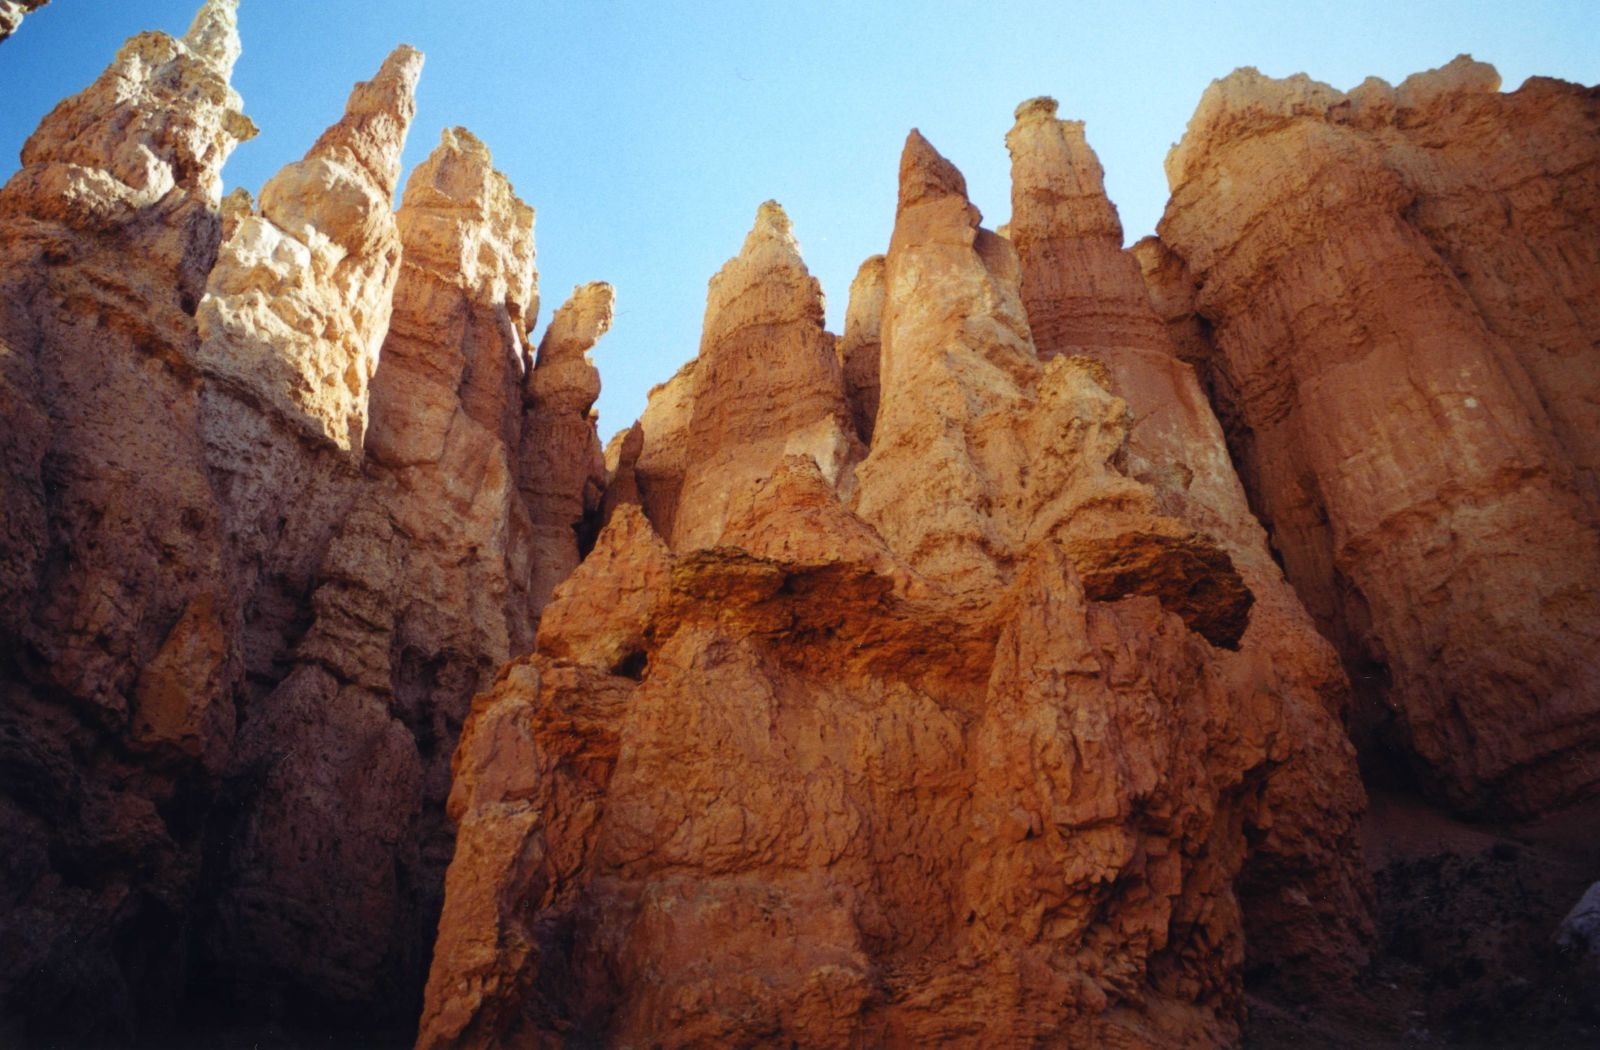 Organ Pipe Formation - © BJ flickr user